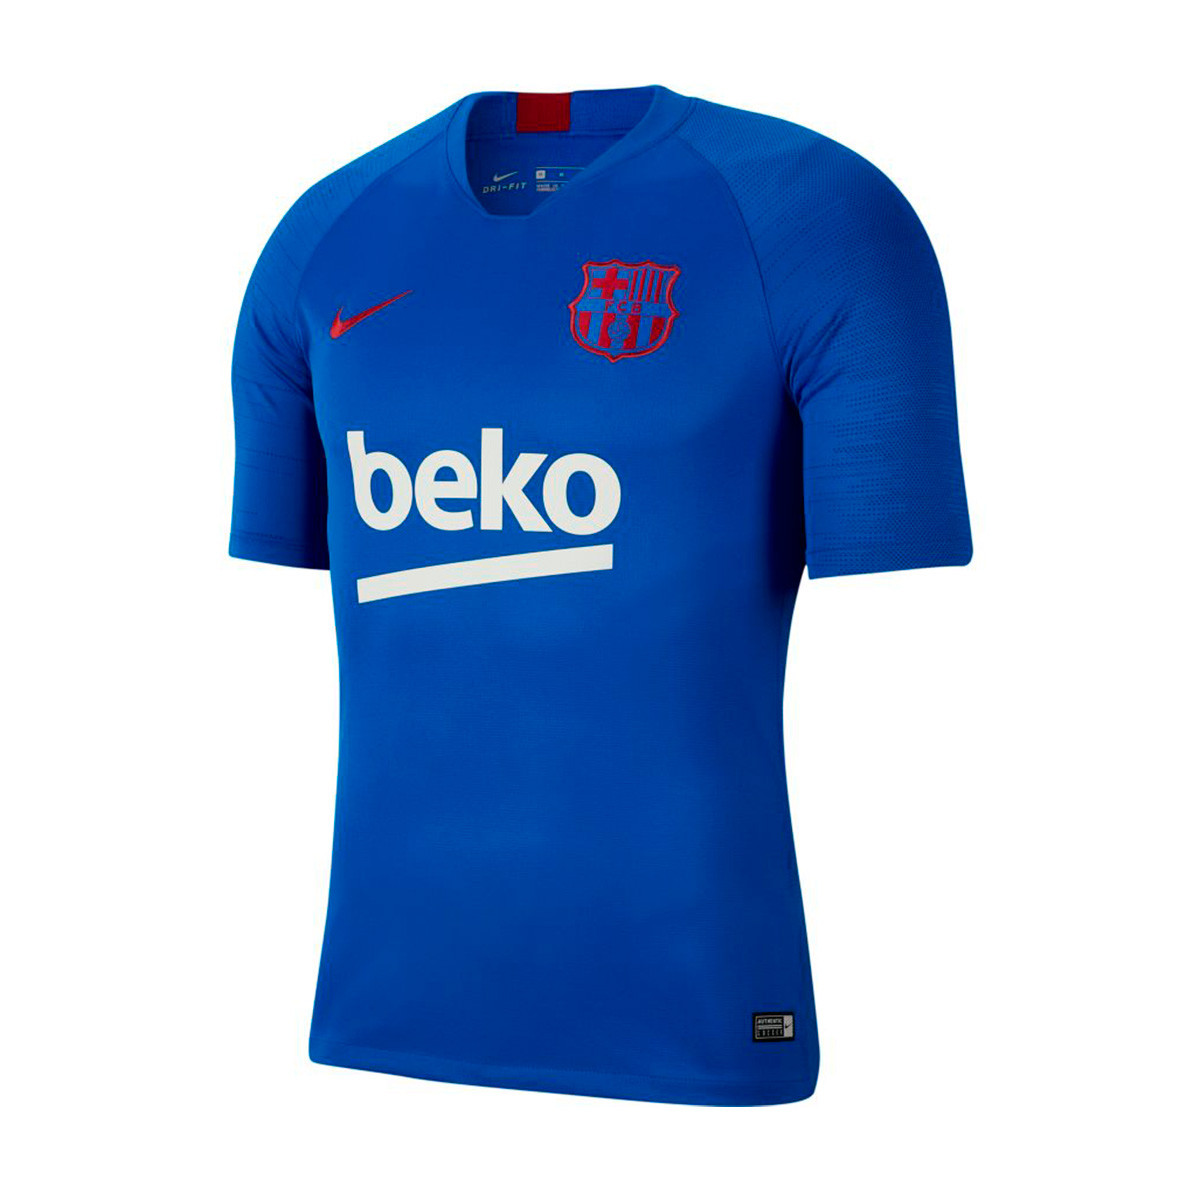 jersey nike fc barcelona breathe strike top ss 2019 2020 lyon blue noble red football store futbol emotion nike fc barcelona breathe strike top ss 2019 2020 jersey